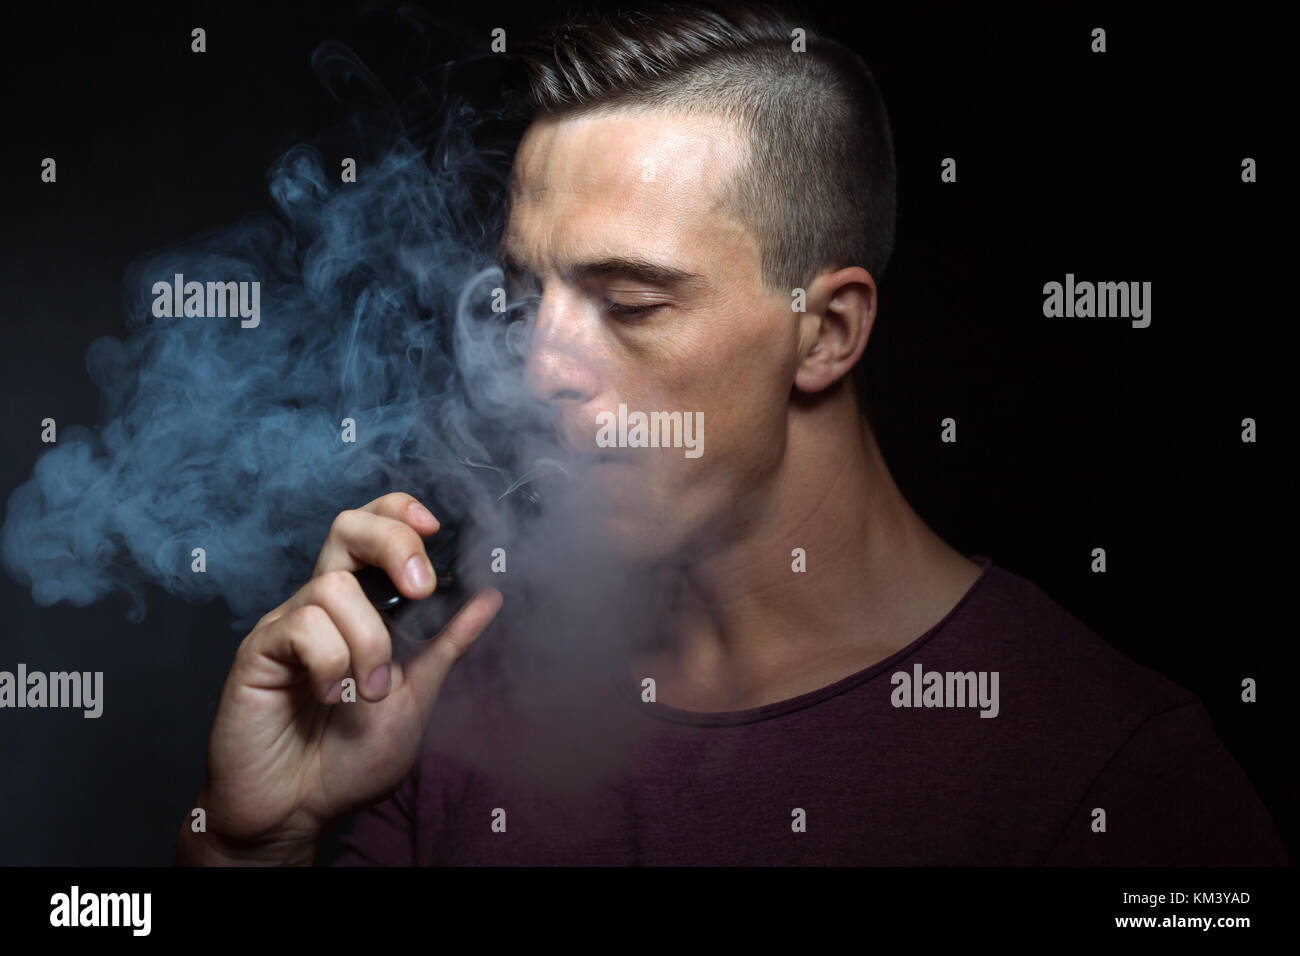 Men on black background vaping and releases a cloud of vapor. - Stock Image